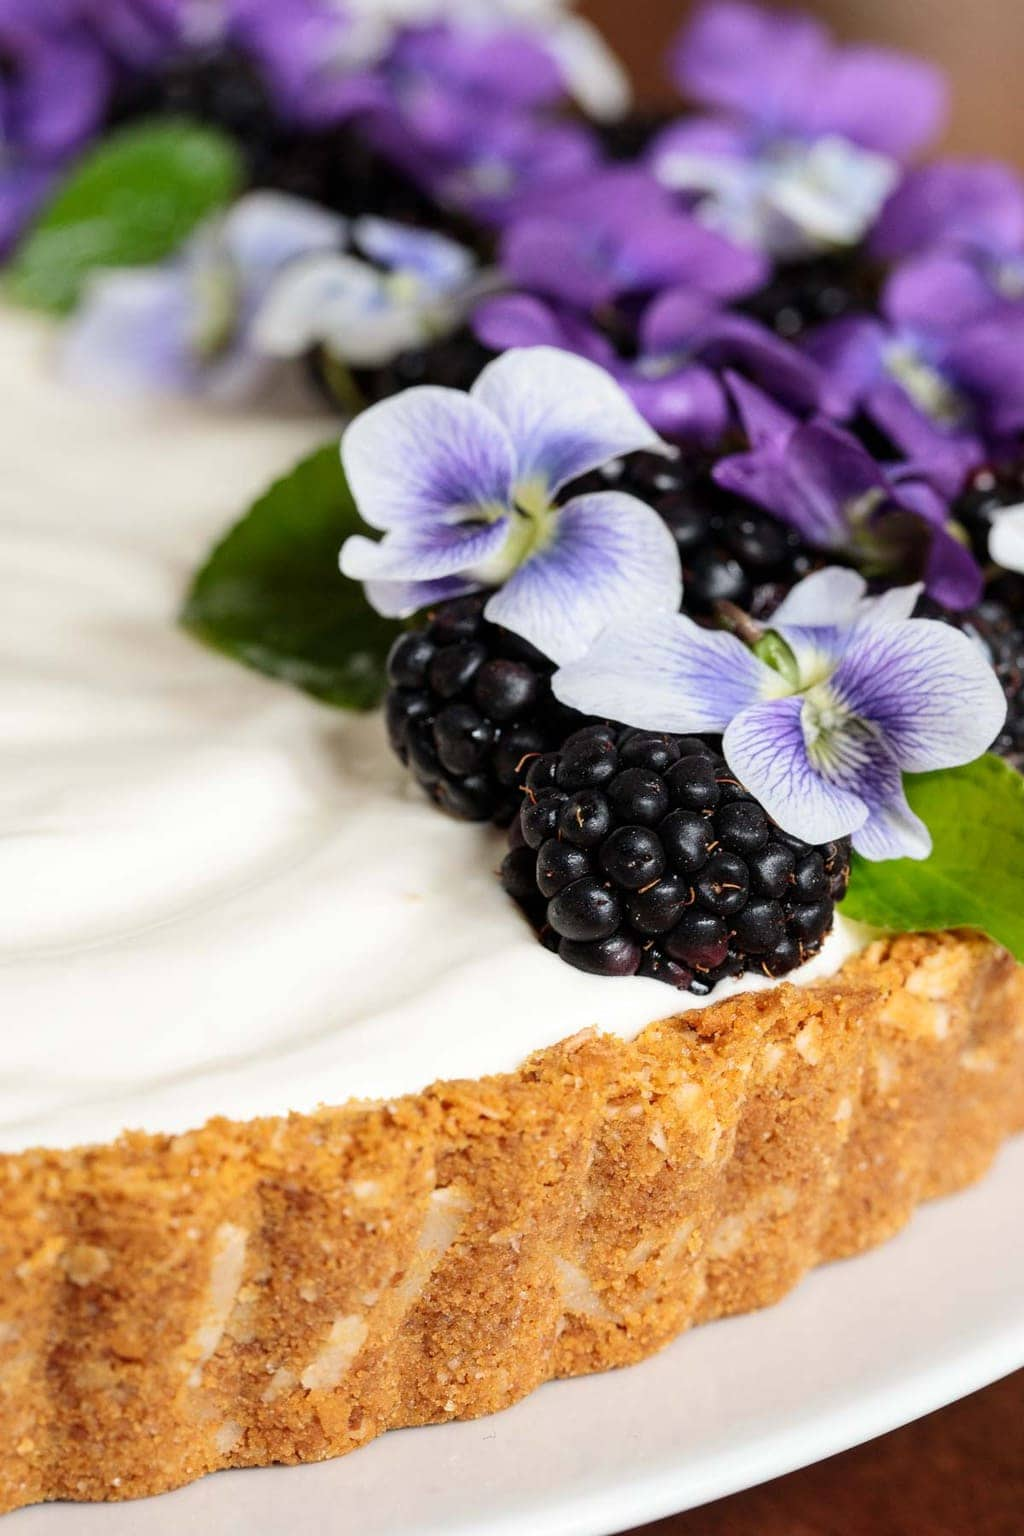 Closeup photo of a Limoncello Lemon Tart decorated with edible wild violets, leaves and fresh blackberries.